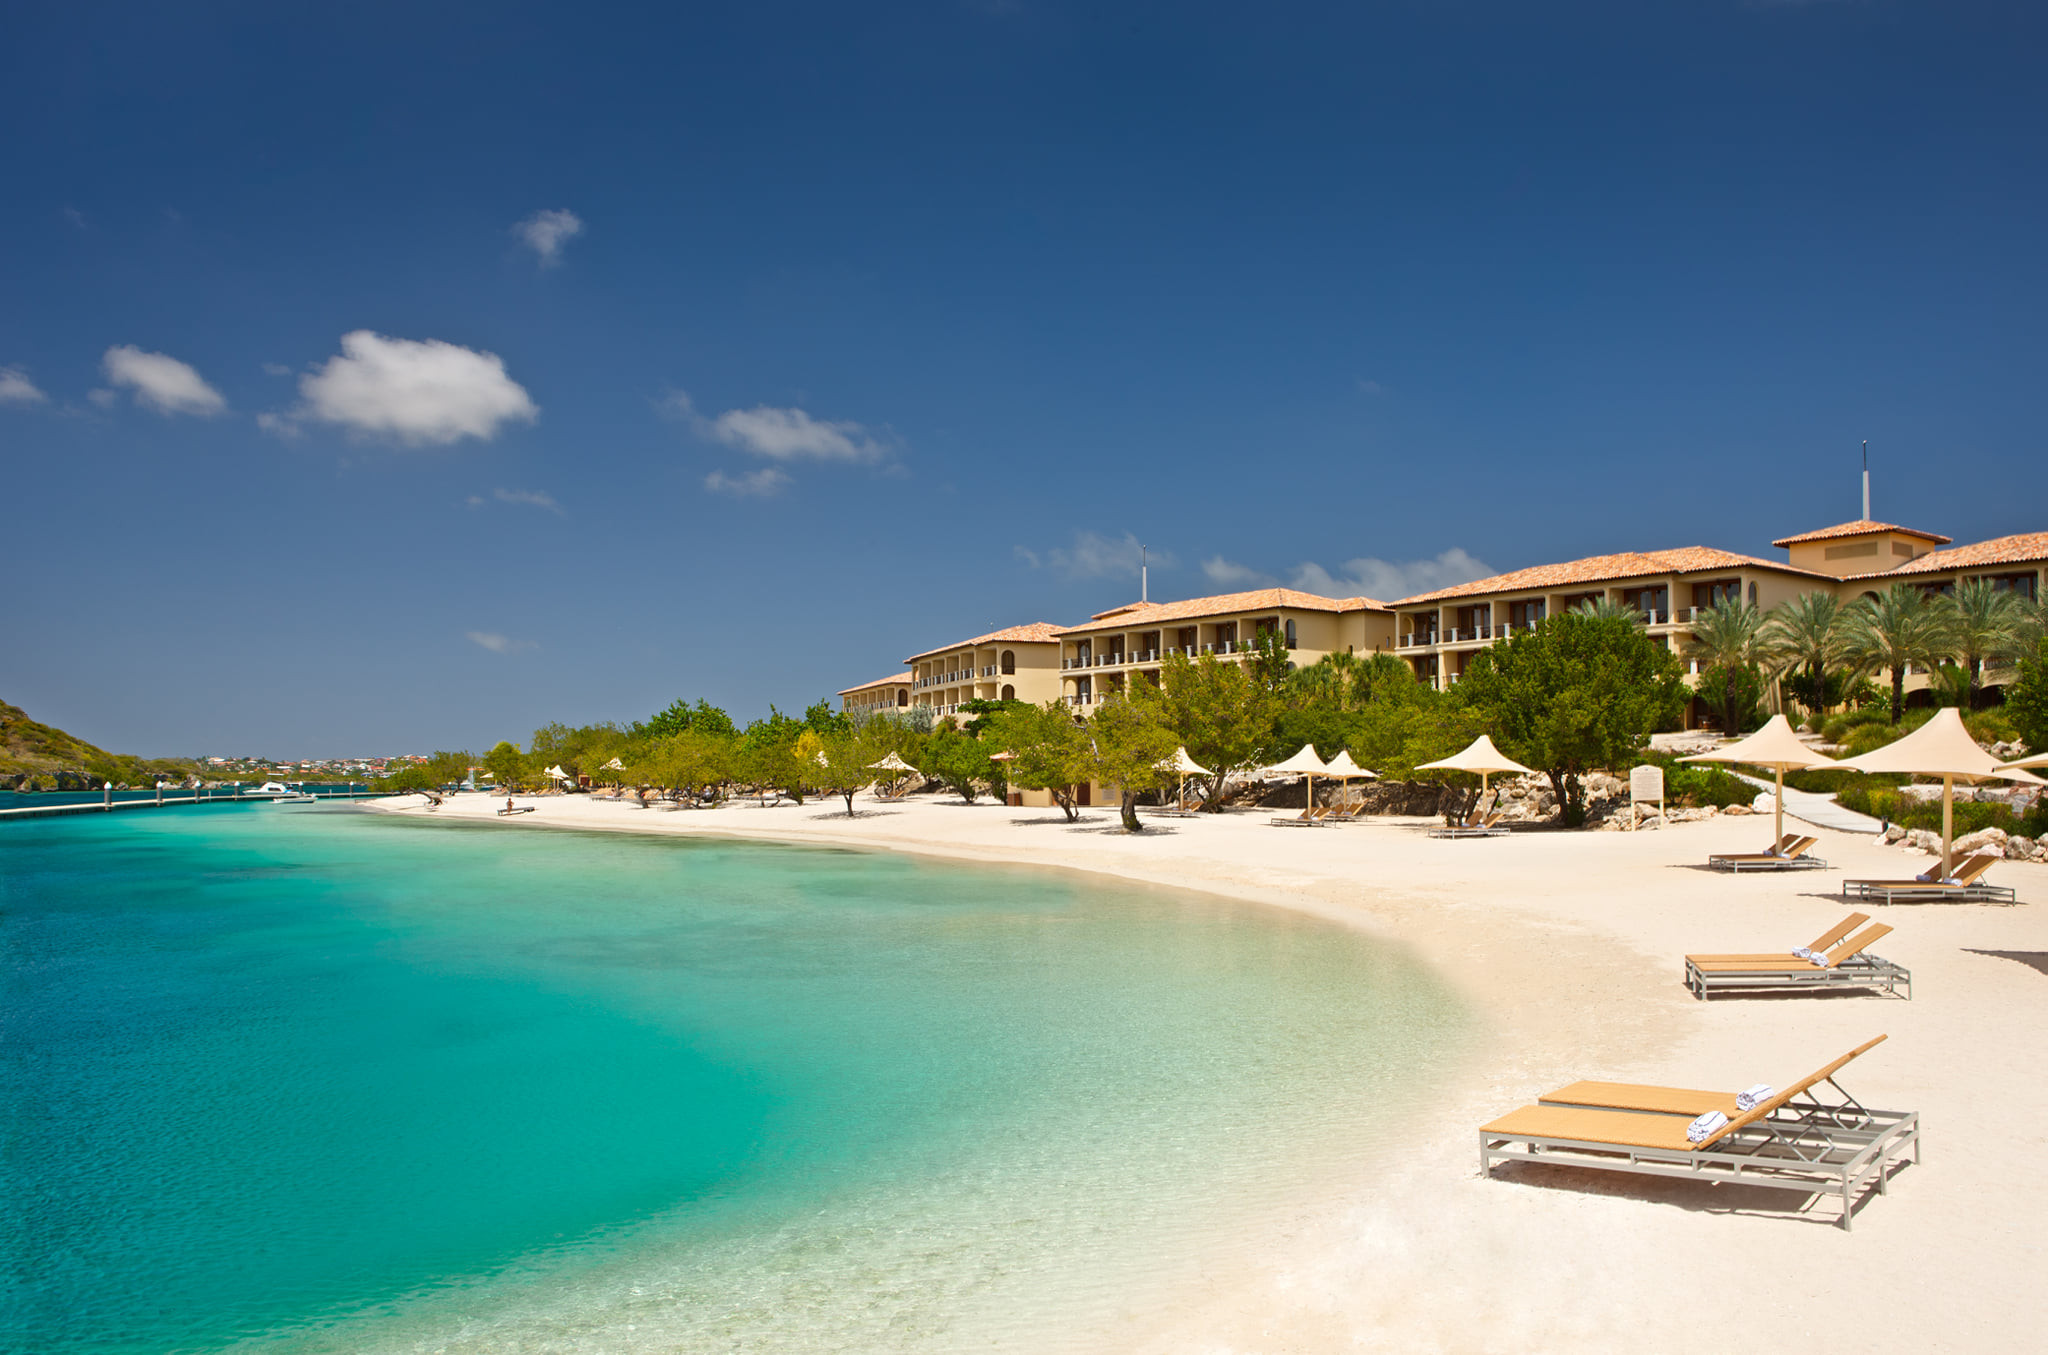 Sandals Resorts Announces Expansion to Curaçao